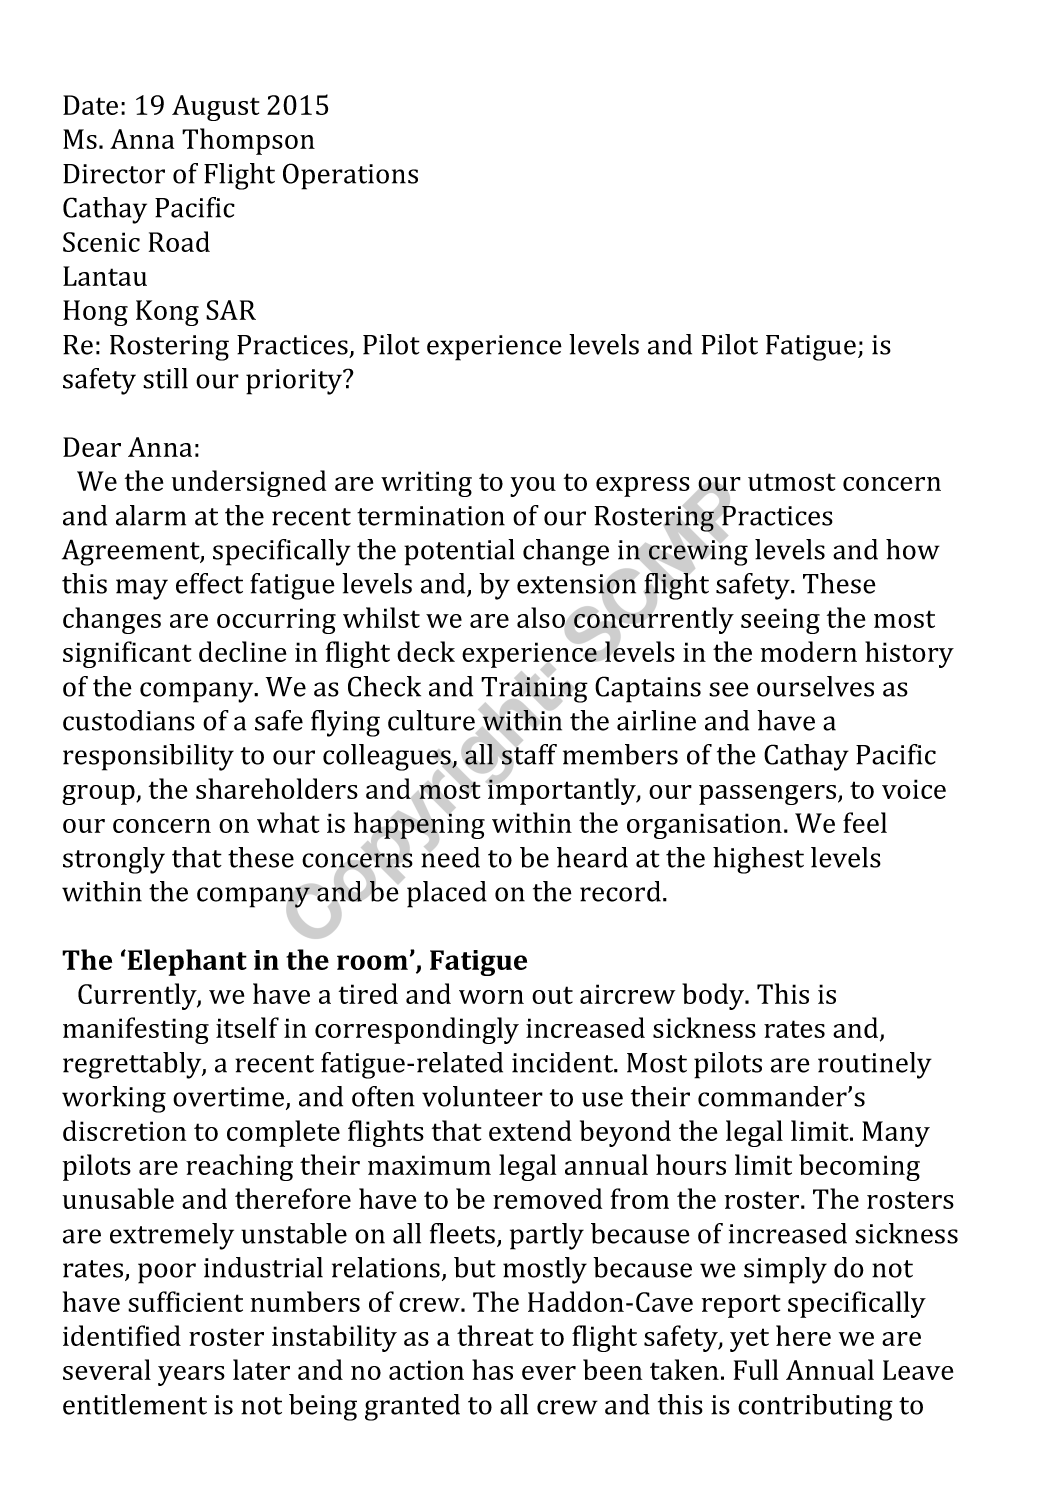 Read In Full Letter Exhausted Cathay Pacific Pilots Sent To